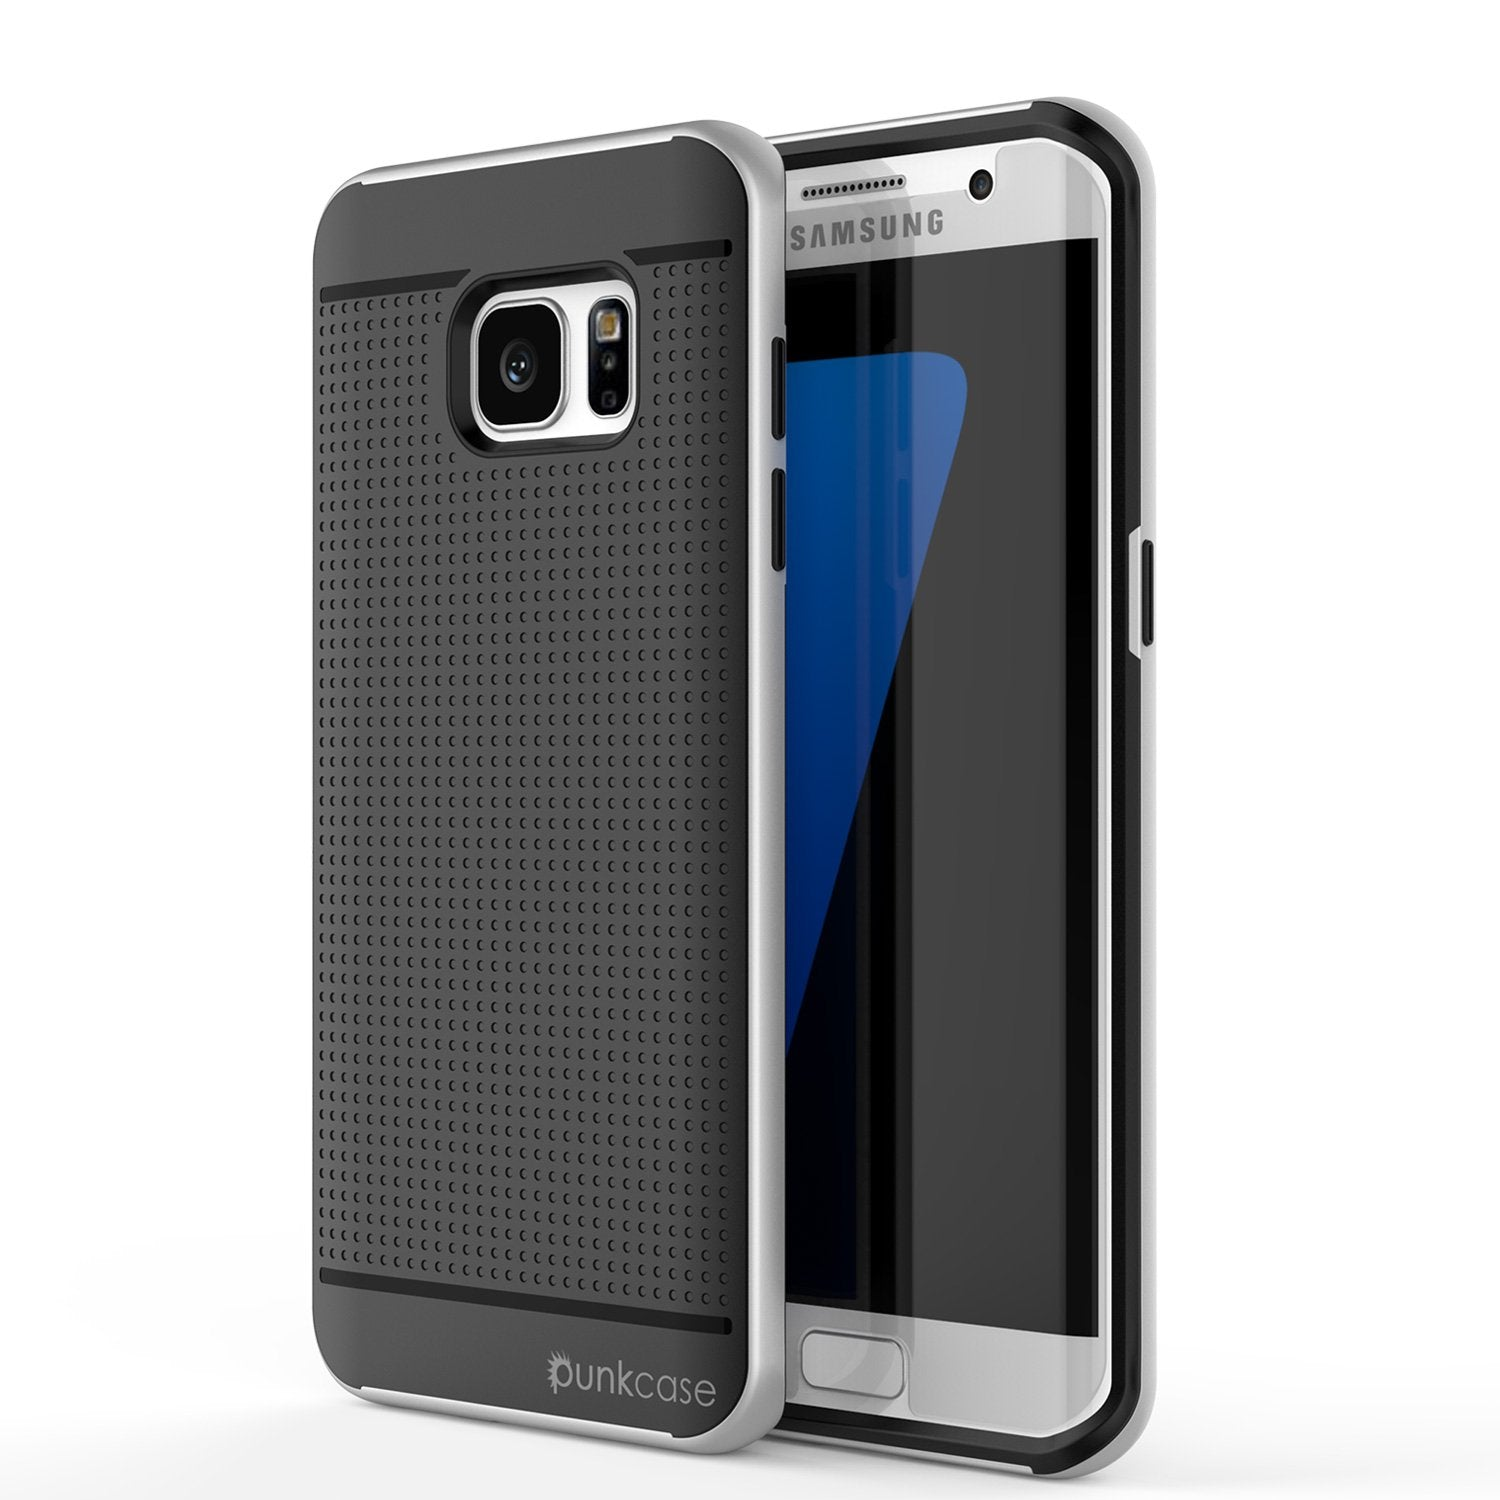 Galaxy S7 Edge Case, PunkCase STEALTH Silver Series Hybrid 3-Piece Shockproof Dual Layer Cover - PunkCase NZ